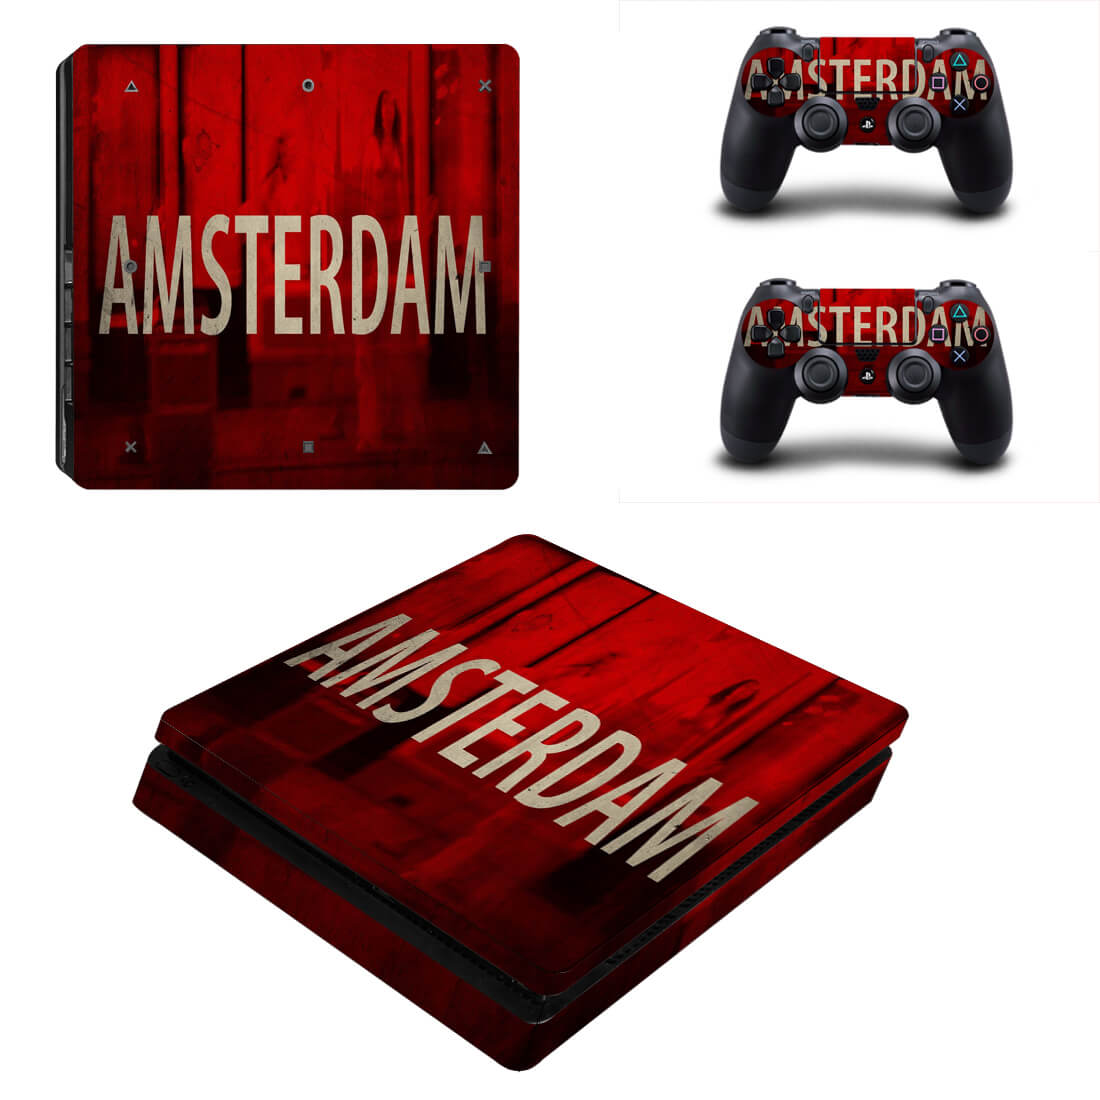 Amsterdam PS4 Slim skin